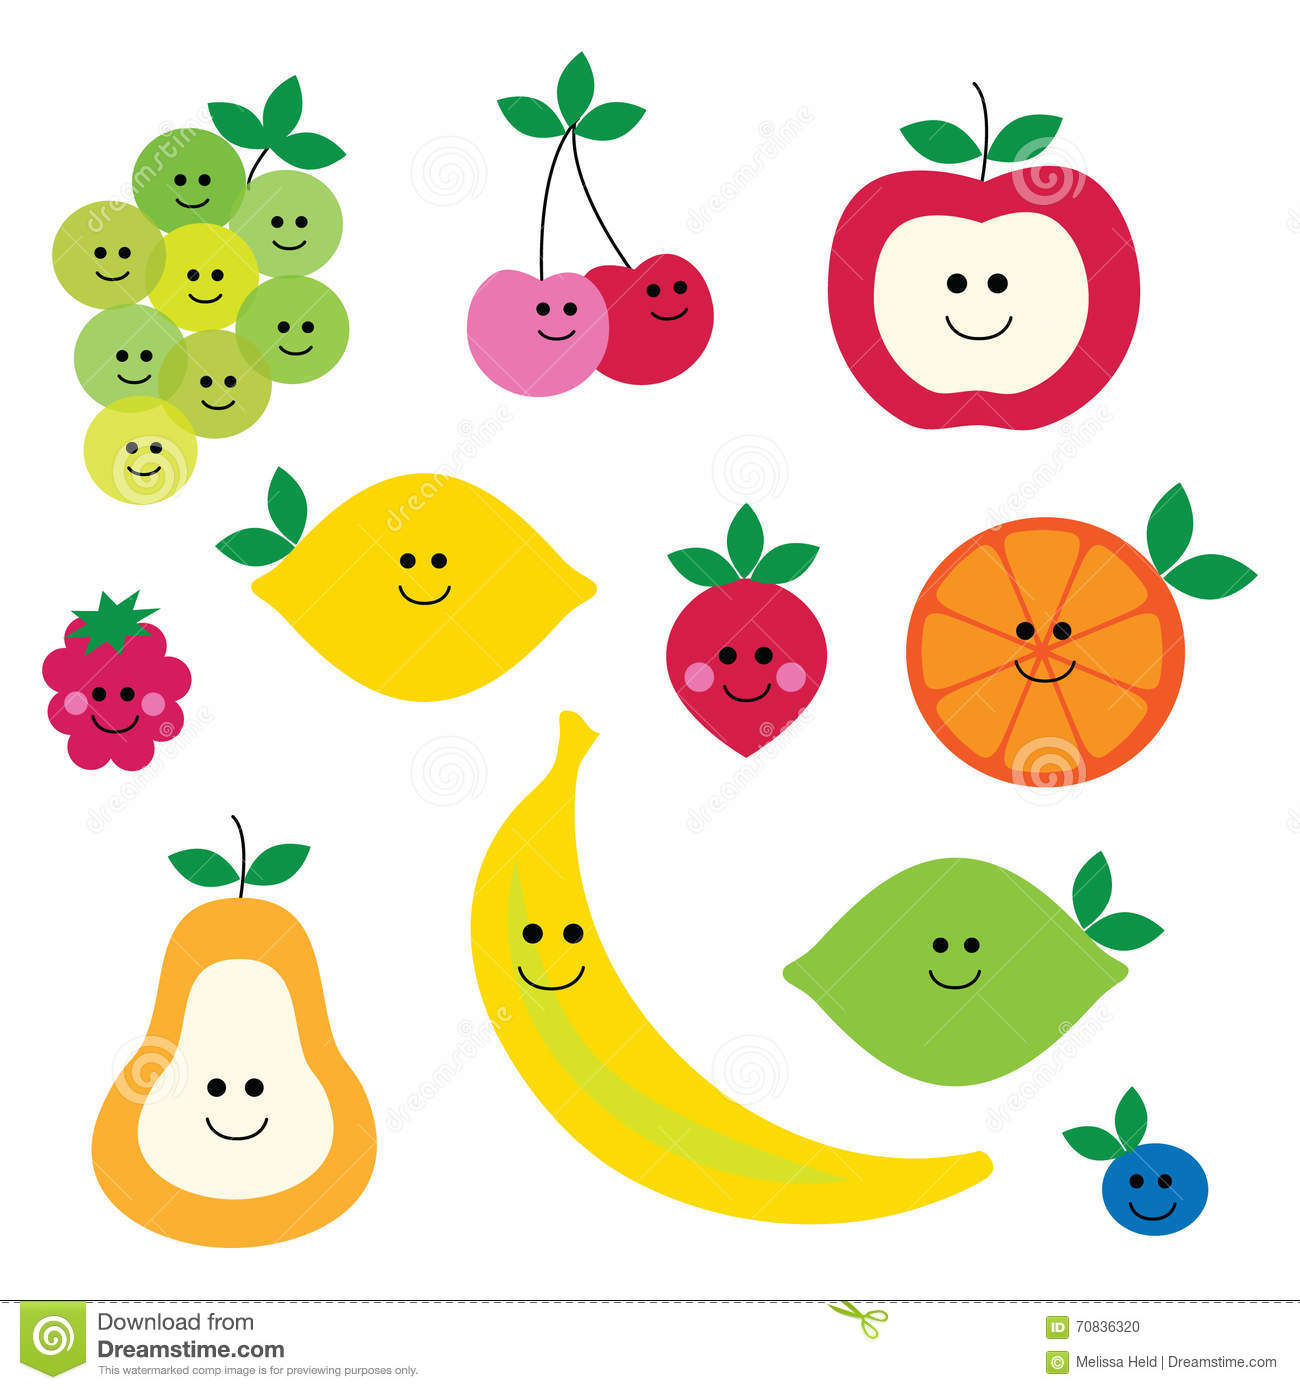 Fruit with faces clipart stock illustration. Illustration of cherry.